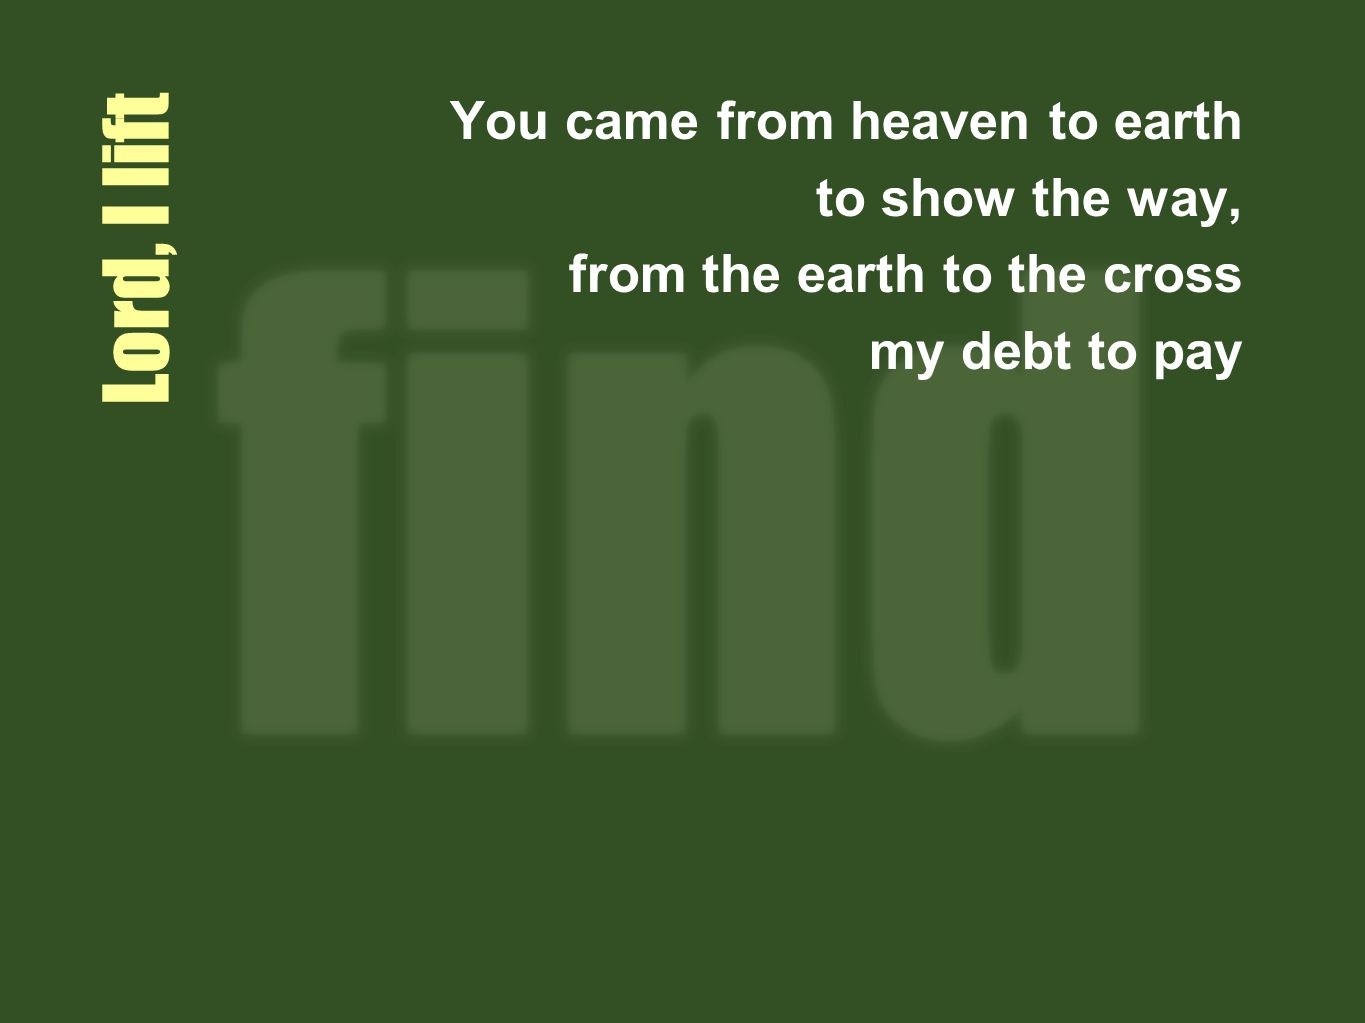 Lord I lift You came from heaven to earth to show the way, from the earth to the cross my debt to pay